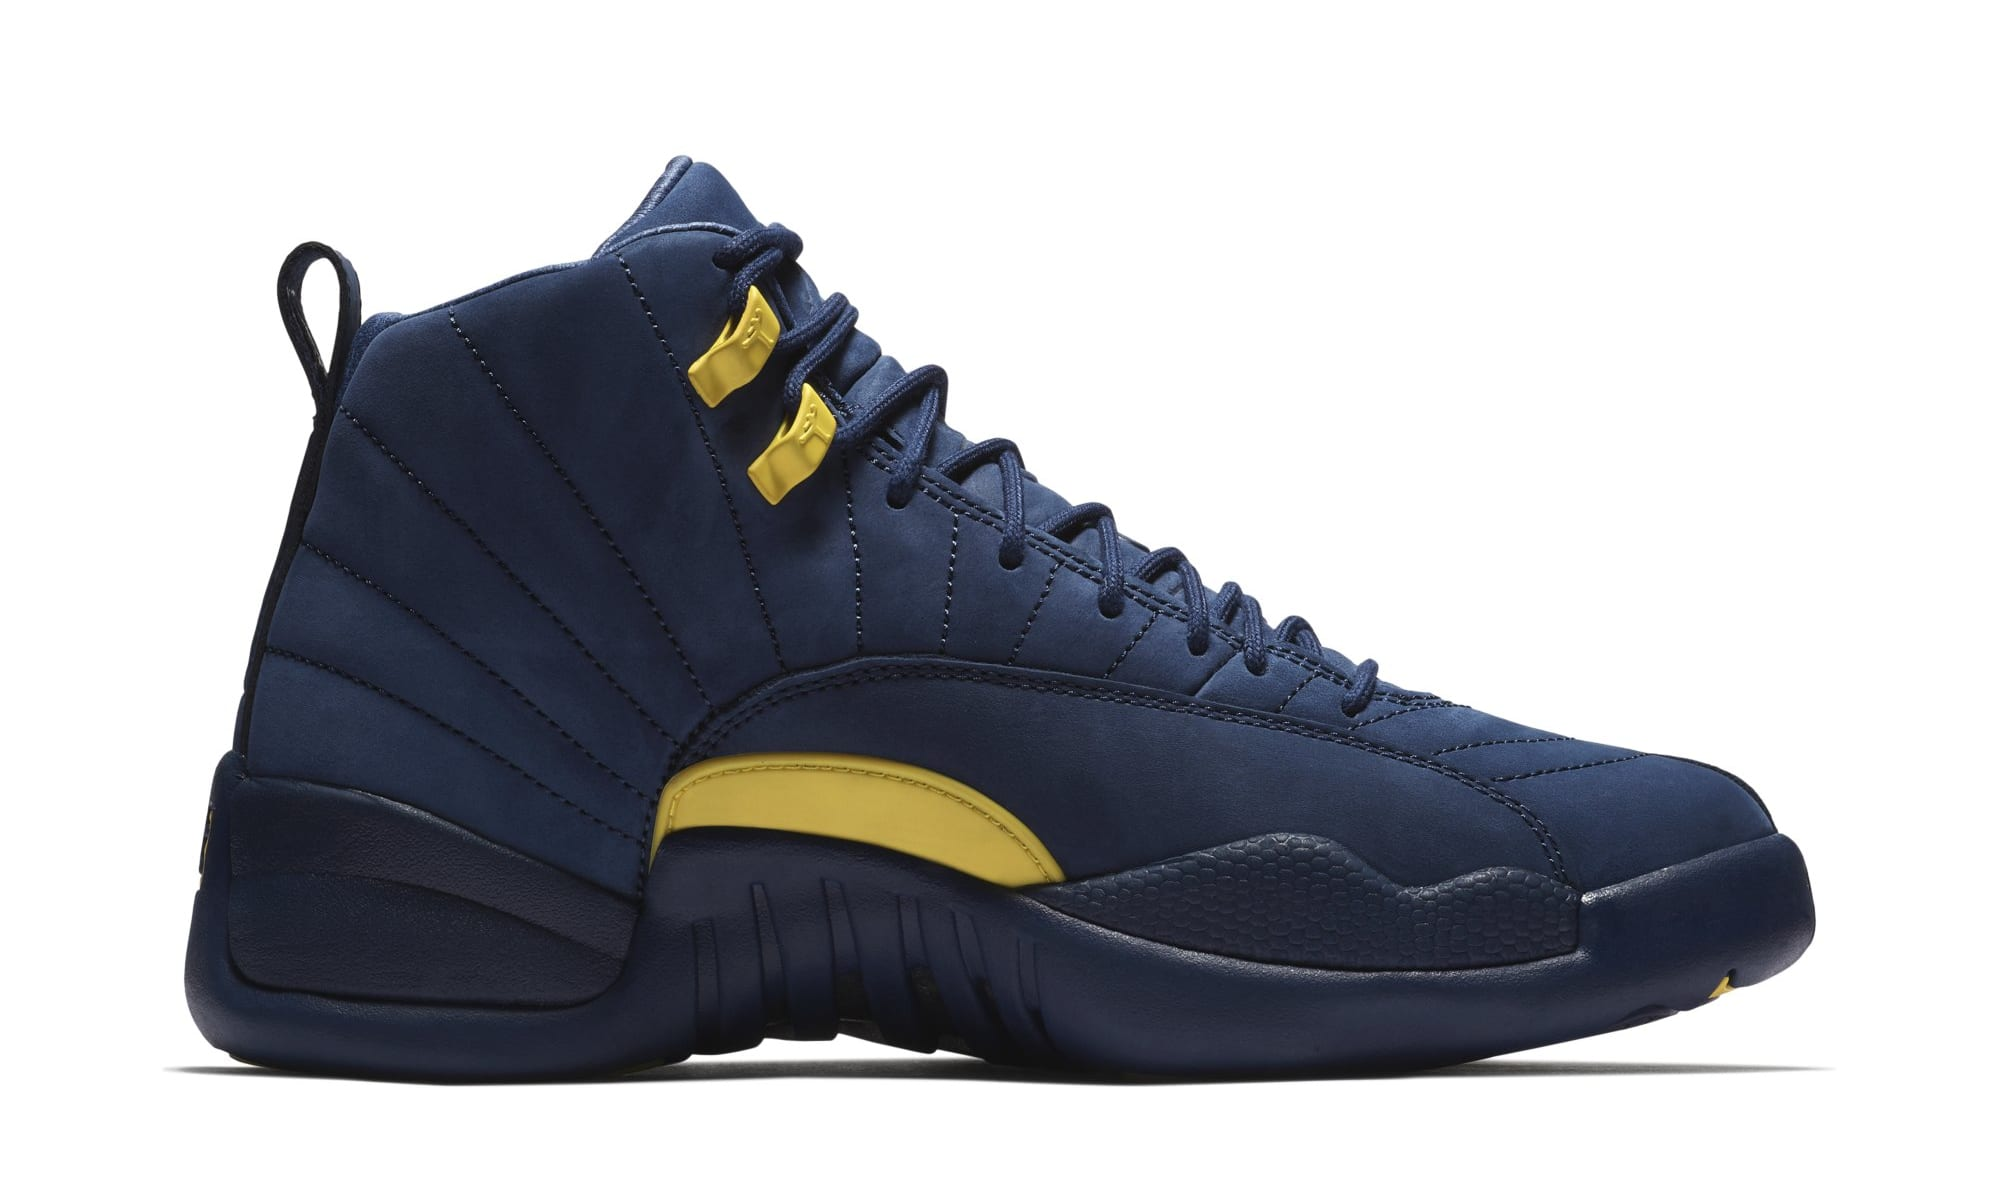 Air Jordan 12 'Michigan' BQ3180-407 (Medial)